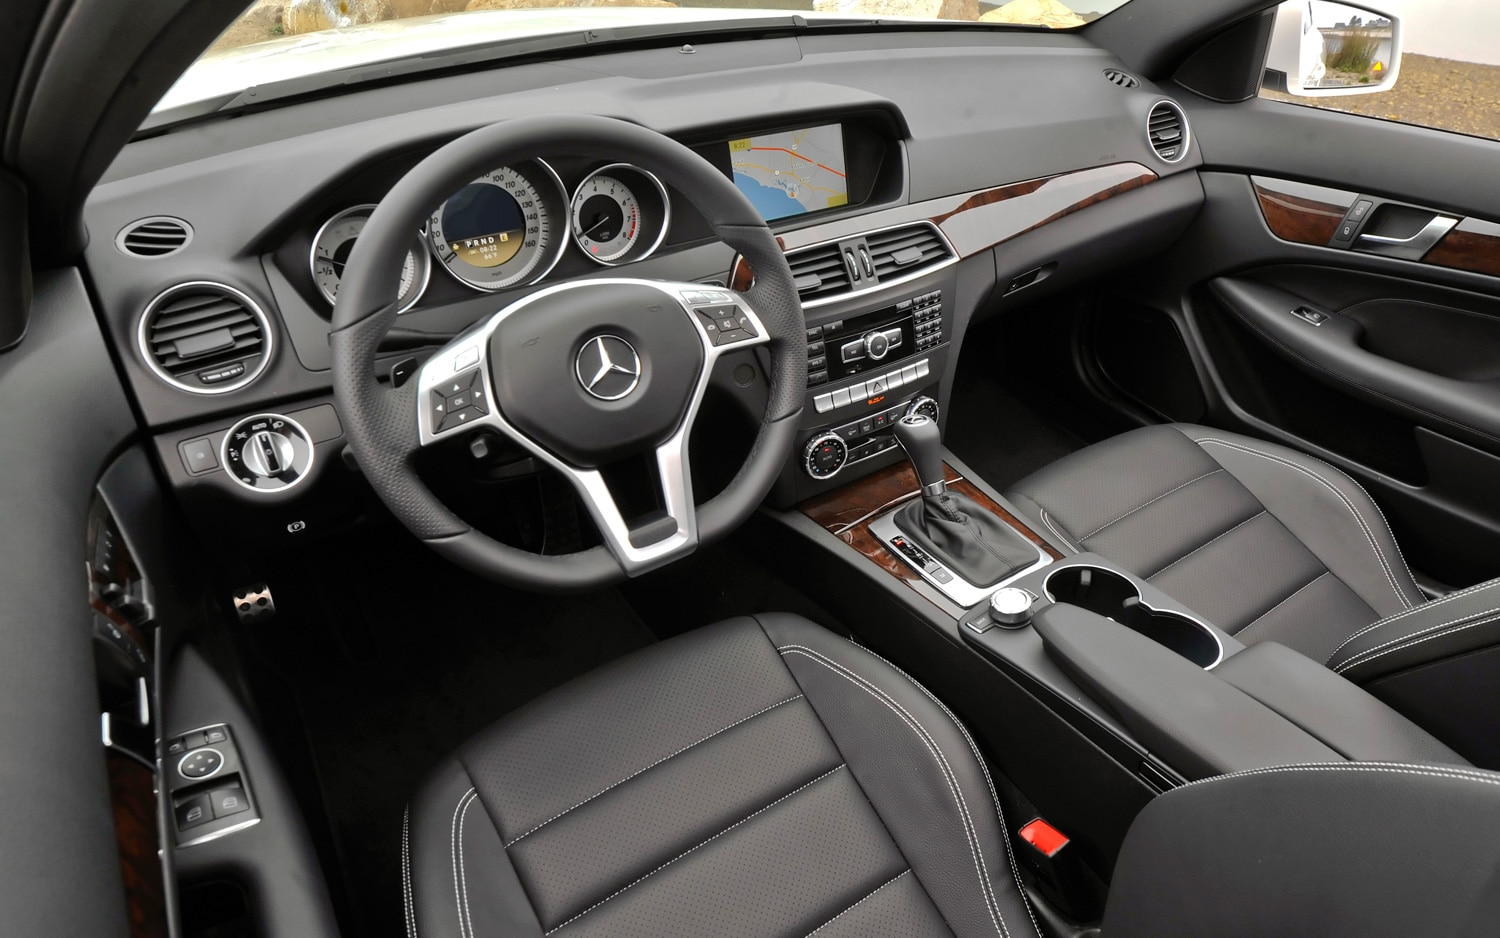 2012 mercedes benz c350 coupe editors 39 notebook automobile magazine. Black Bedroom Furniture Sets. Home Design Ideas